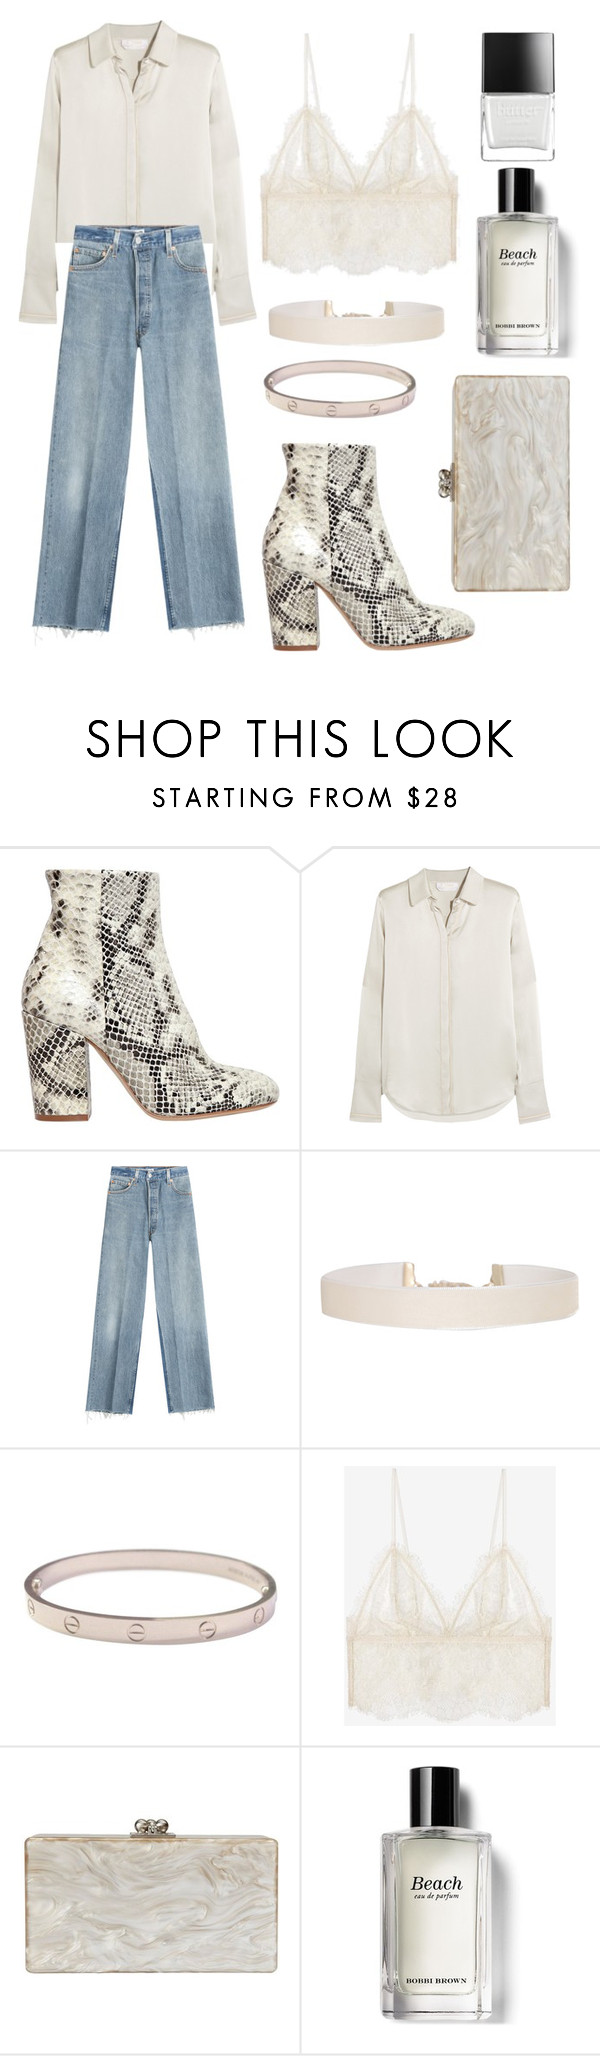 """""""Untitled #87"""" by laurasure ❤ liked on Polyvore featuring Strategia, Chloé, RE/DONE, Humble Chic, Cartier, Anine Bing, Edie Parker, Bobbi Brown Cosmetics and Butter London"""